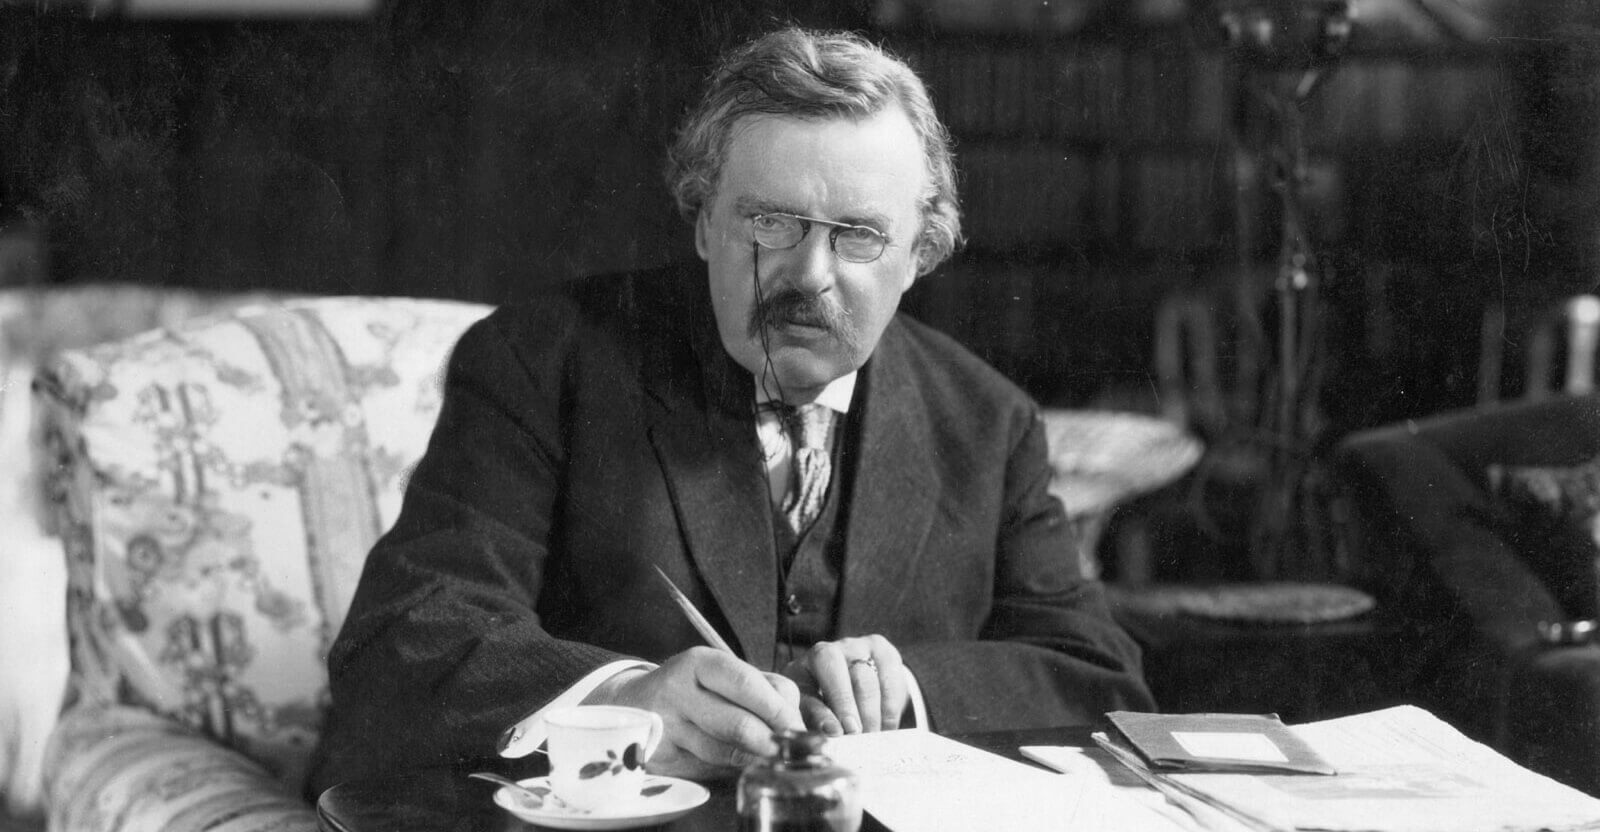 G. K. Chesterton bibliography